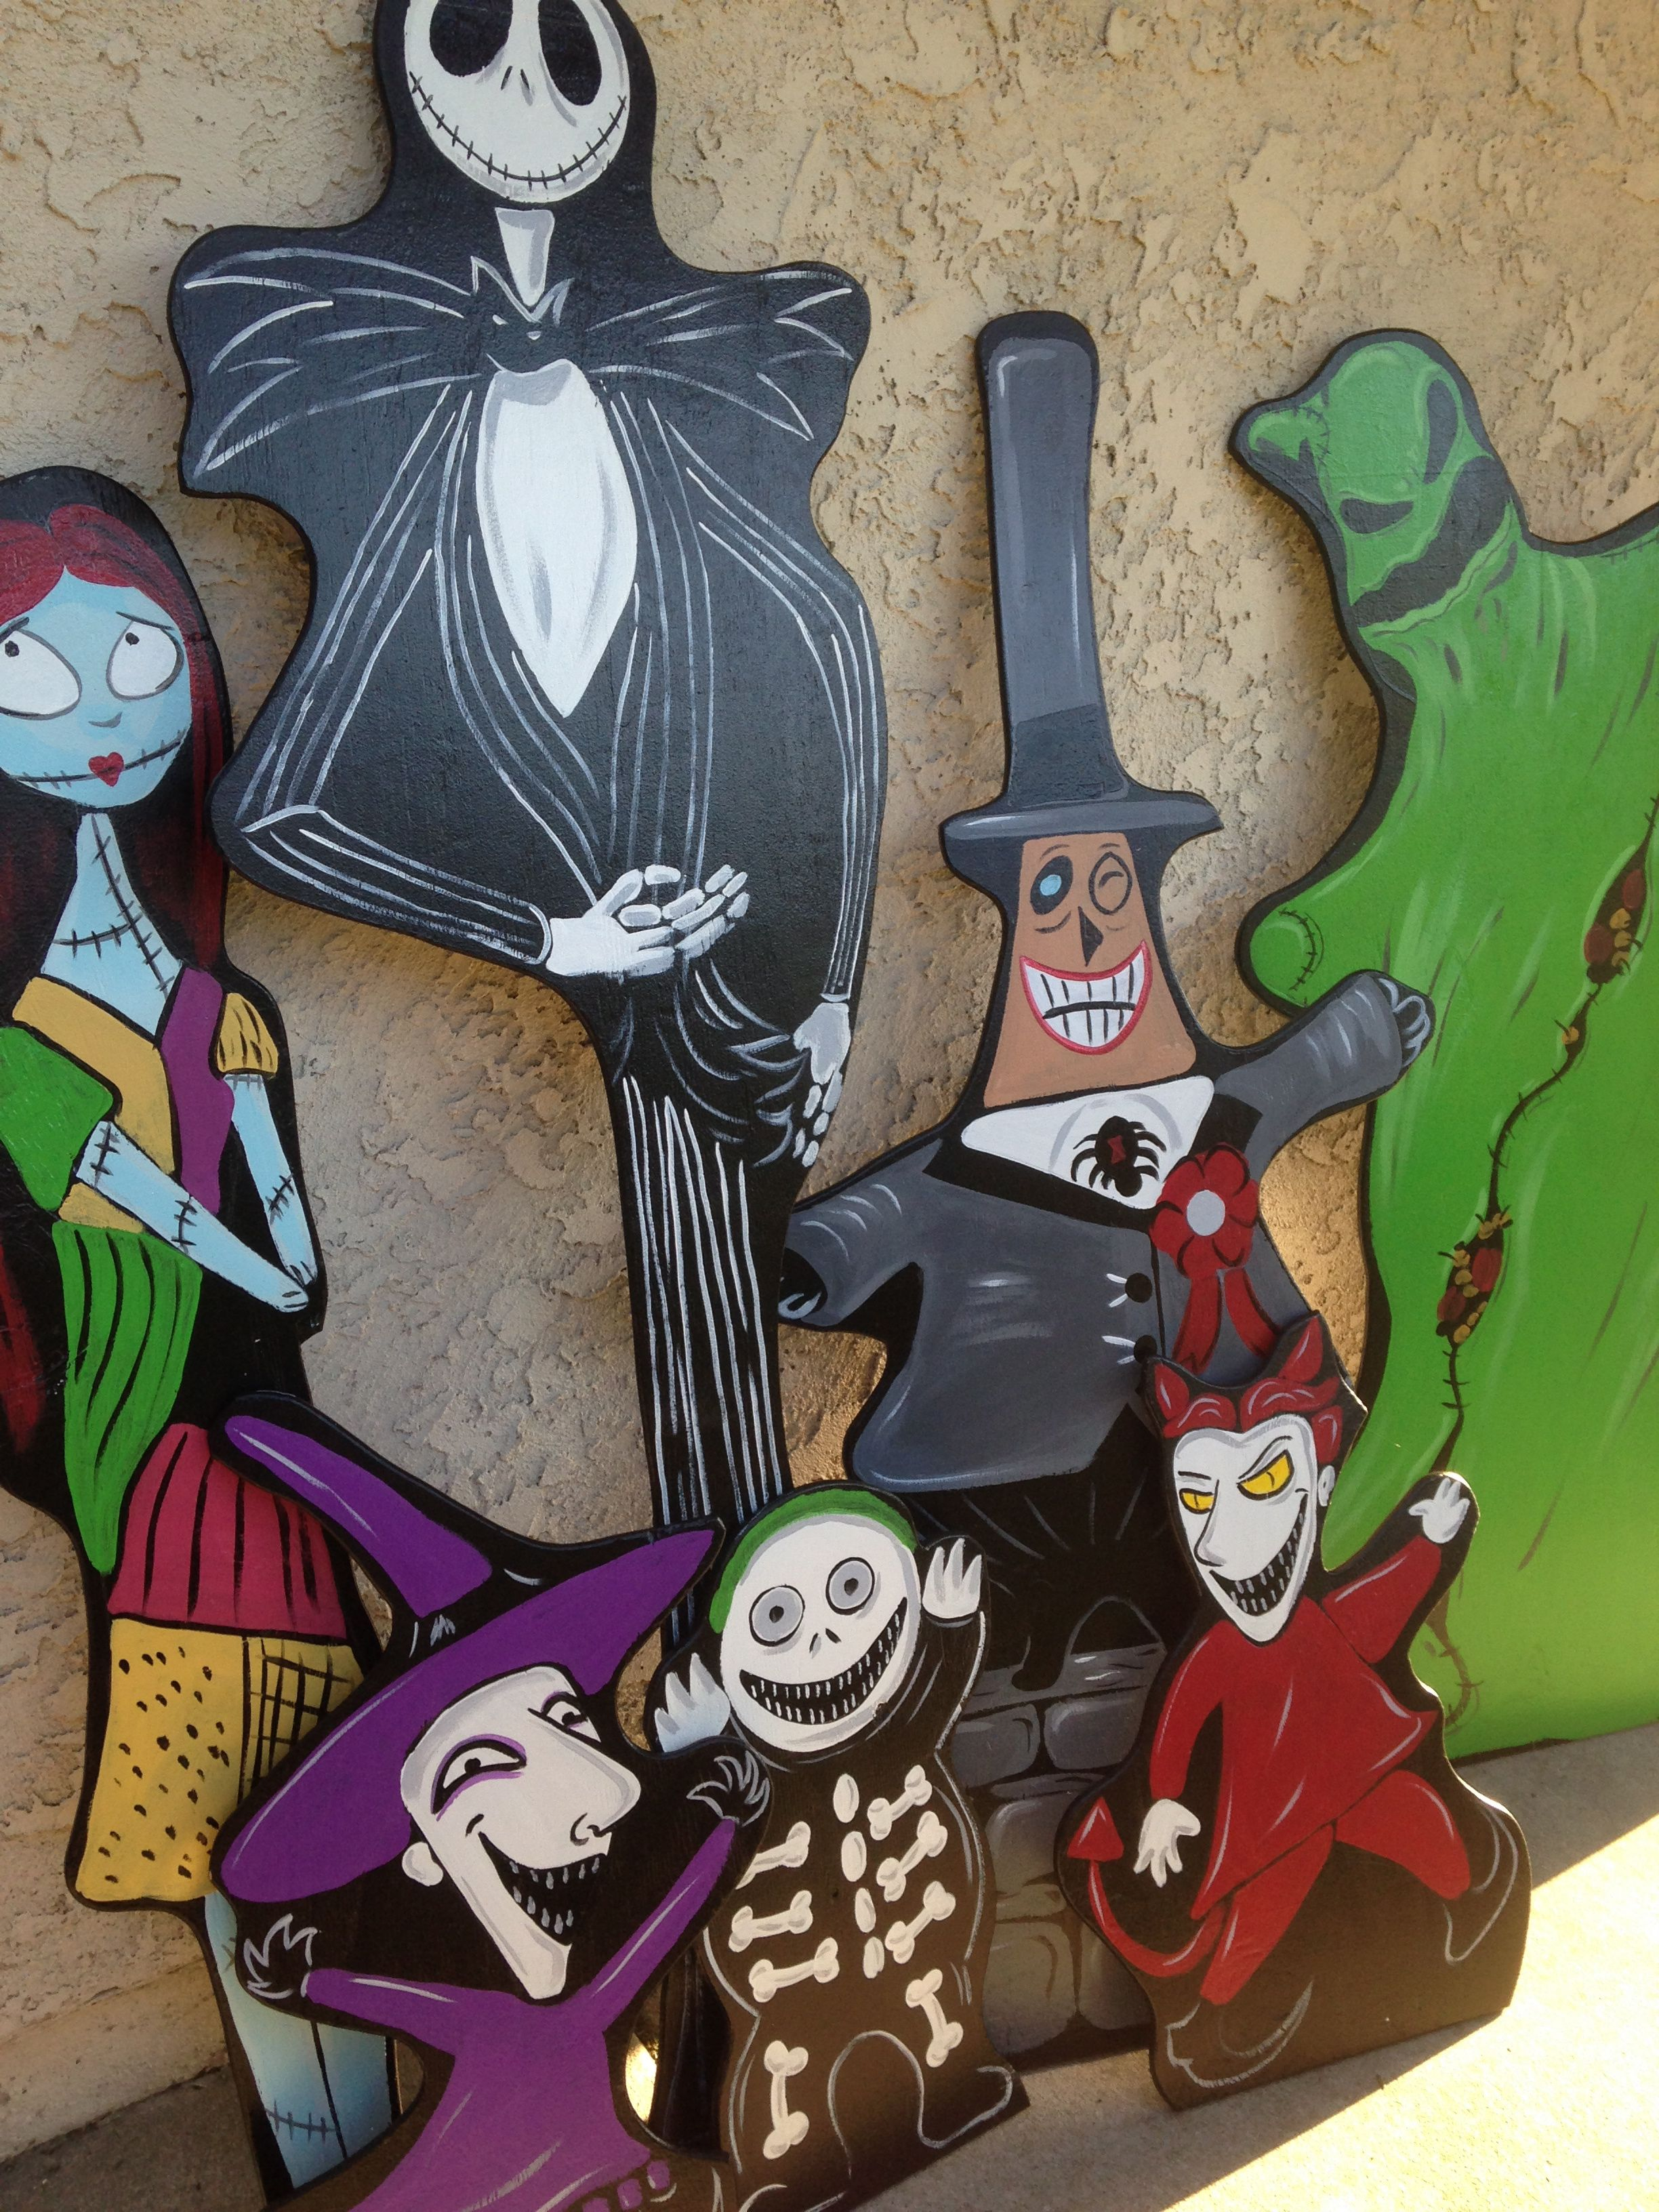 Wooden halloween yard decorations - Purchase Halloween Lawn Decorations Www Holidaylawncharacters Com